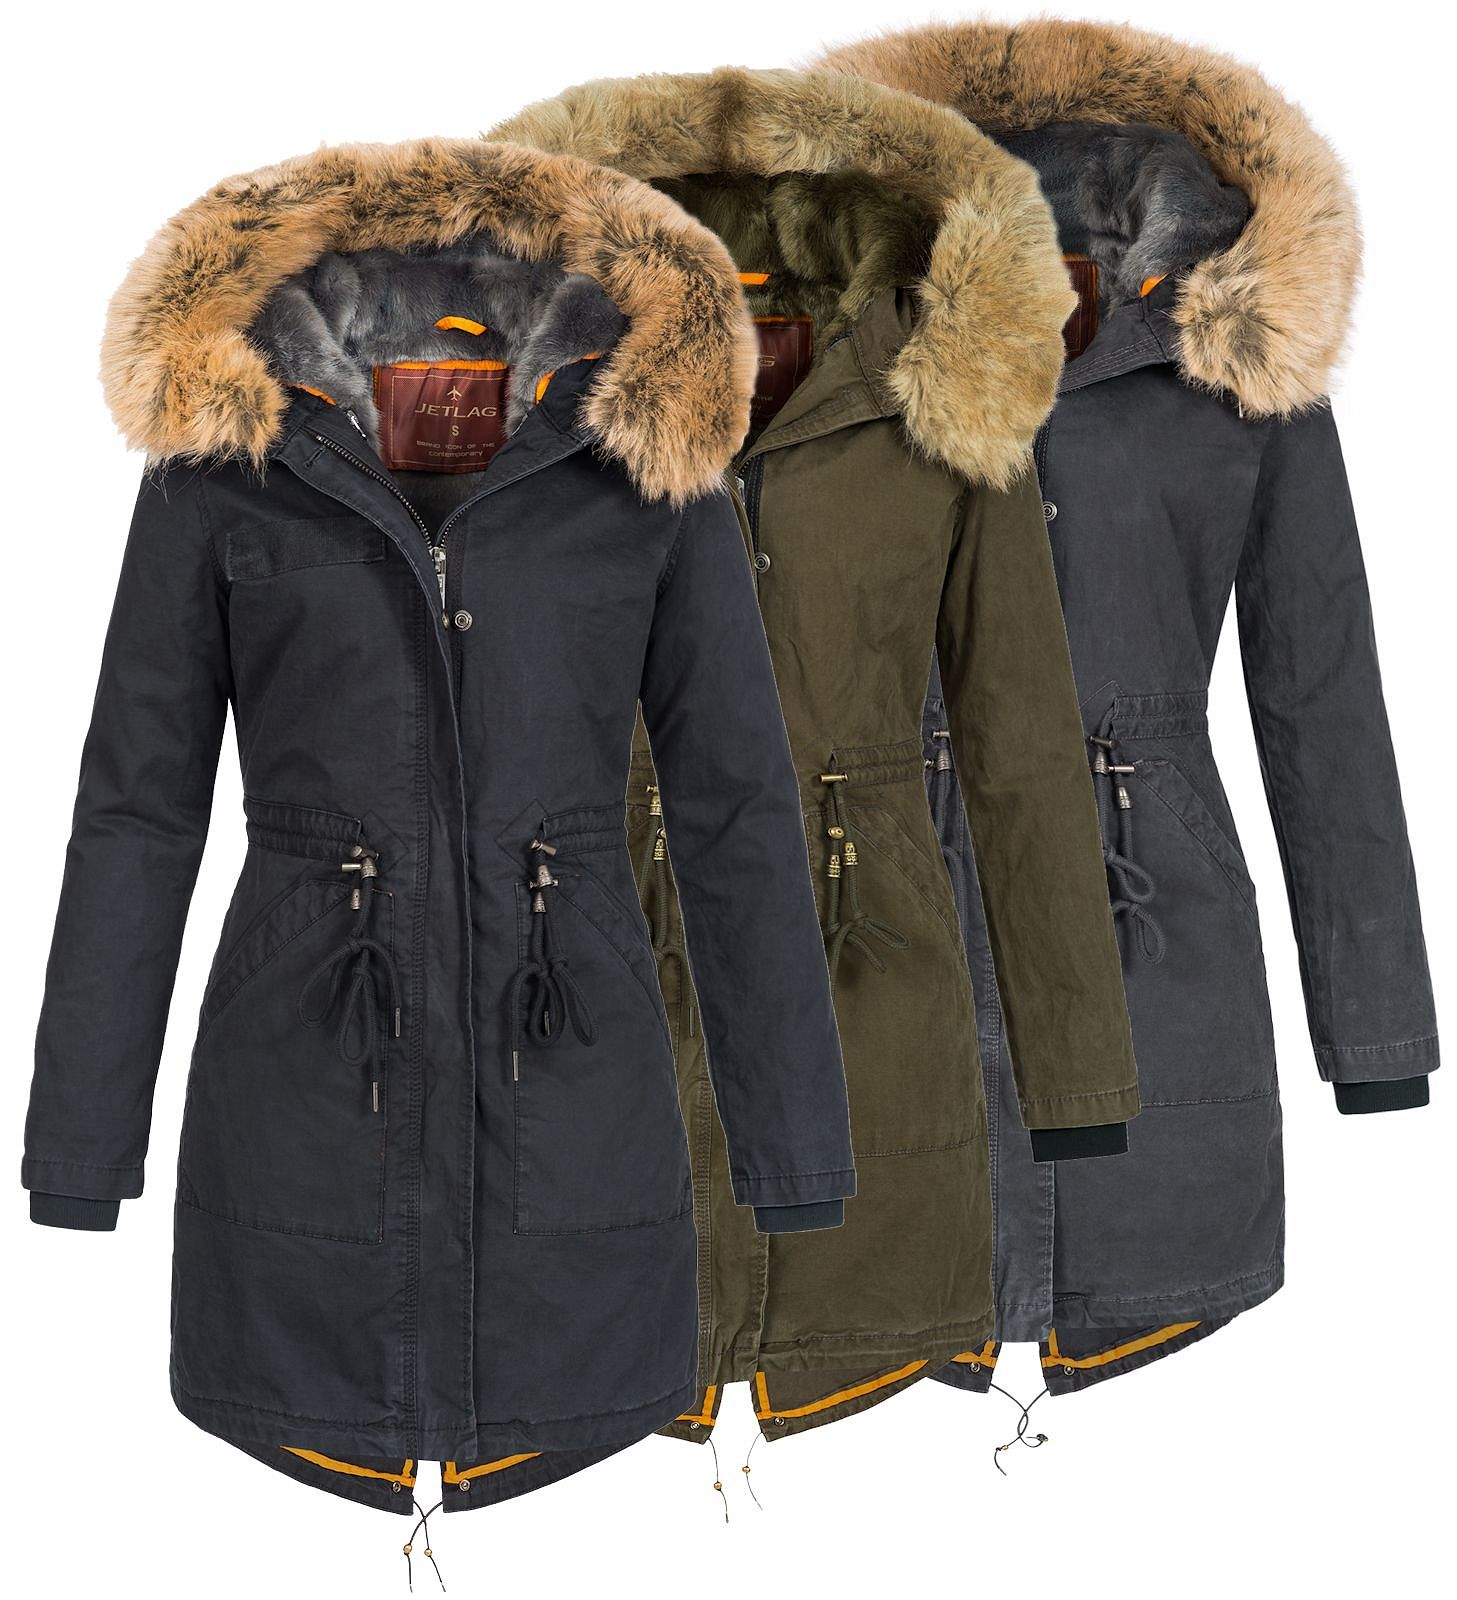 size 40 122f0 33bee Jet Lag Damen Winter Parka 18-135